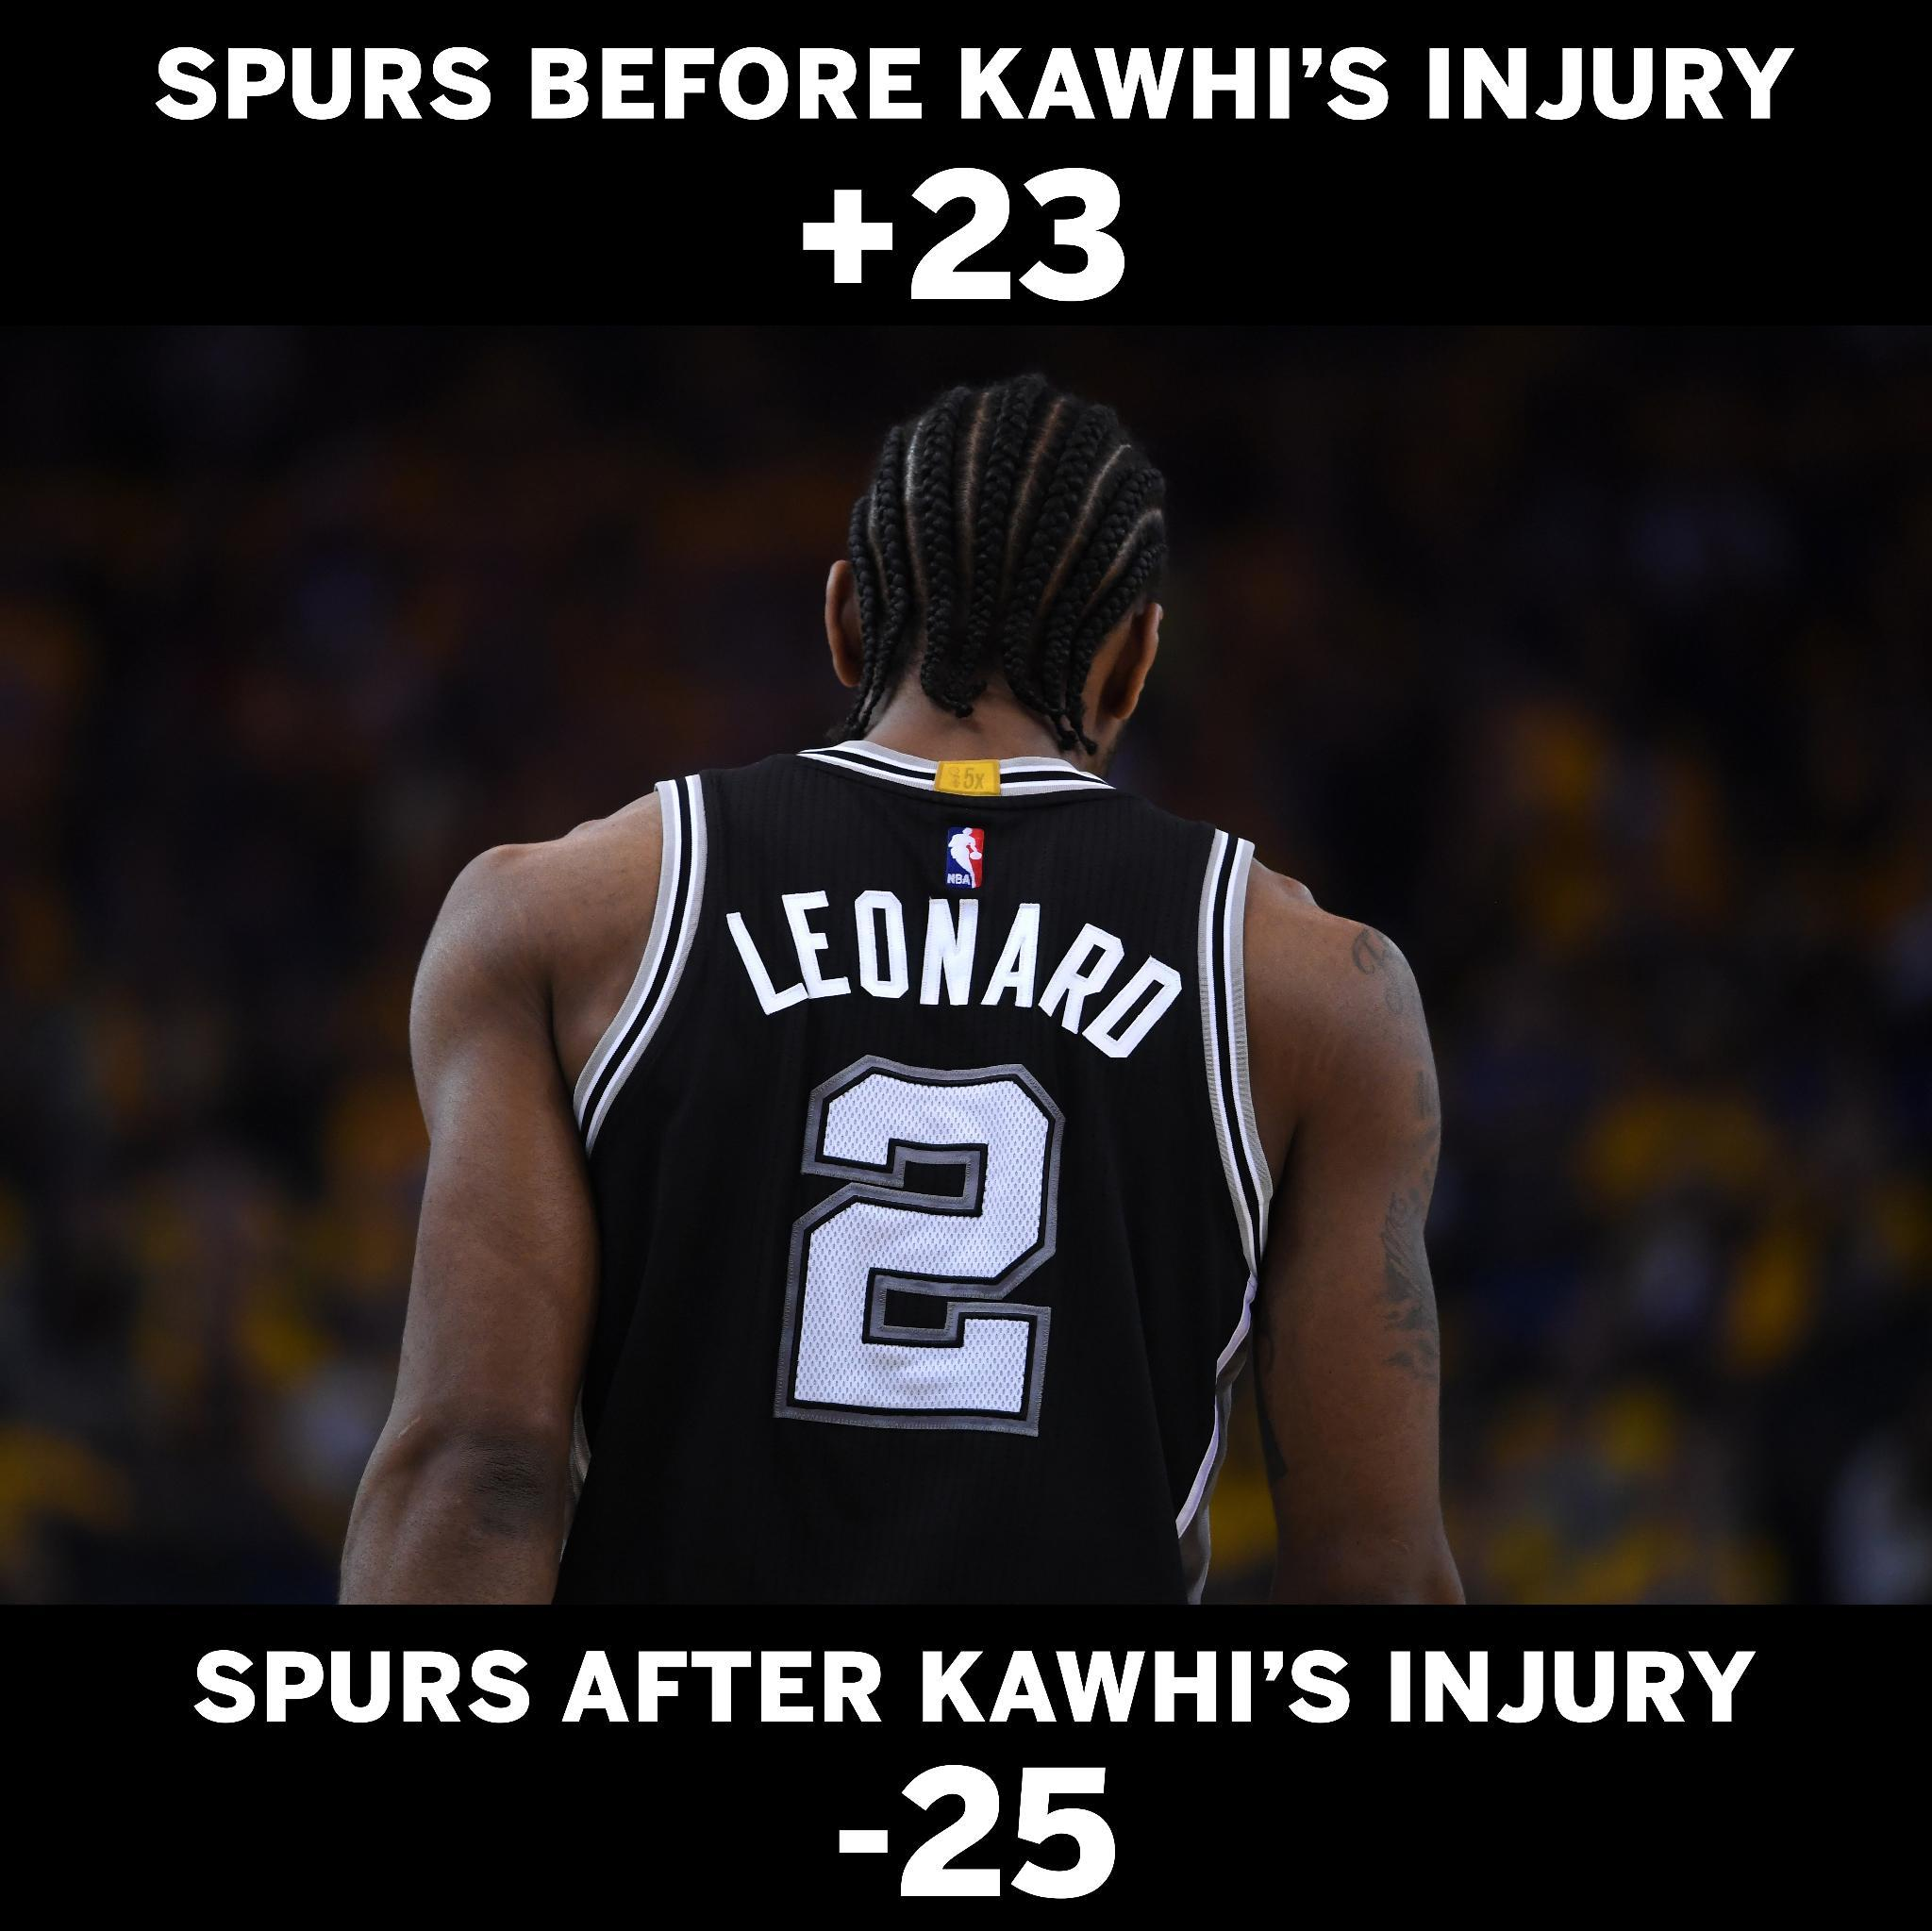 Kawhi's absence was felt in Game 1. (via @espn) https://t.co/4pBvVsY3HI